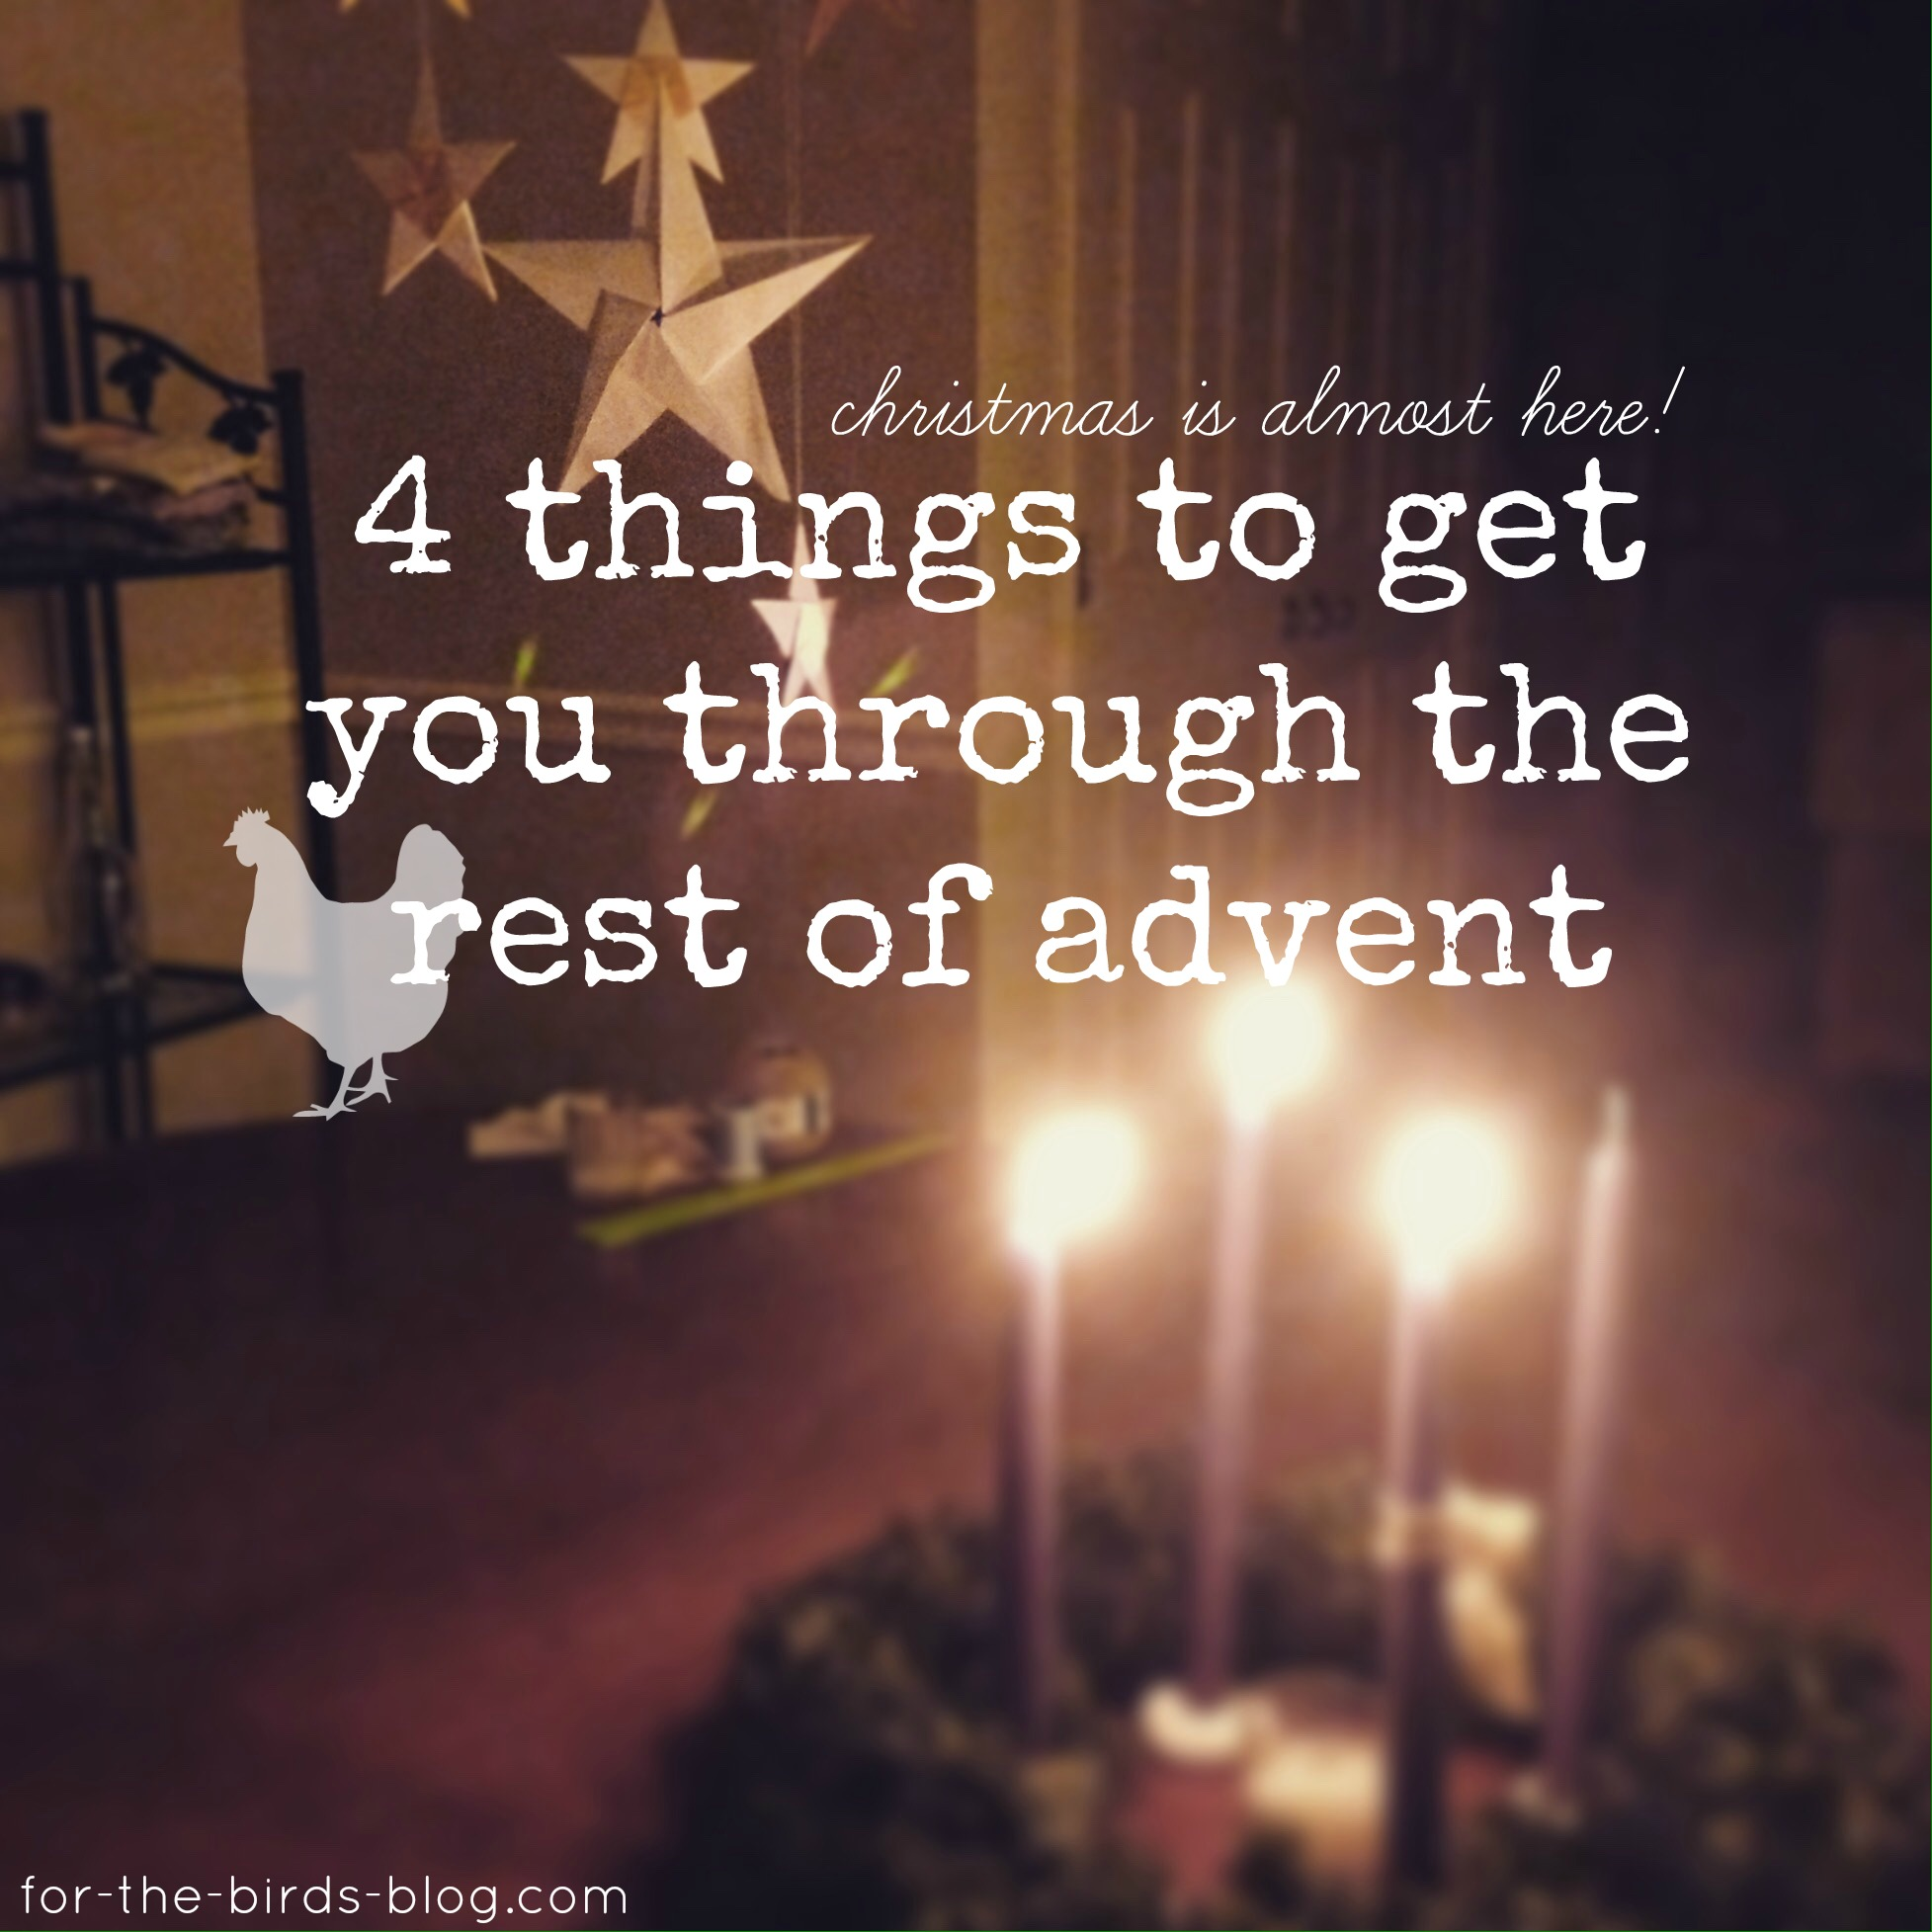 4 things to get you through the rest of advent